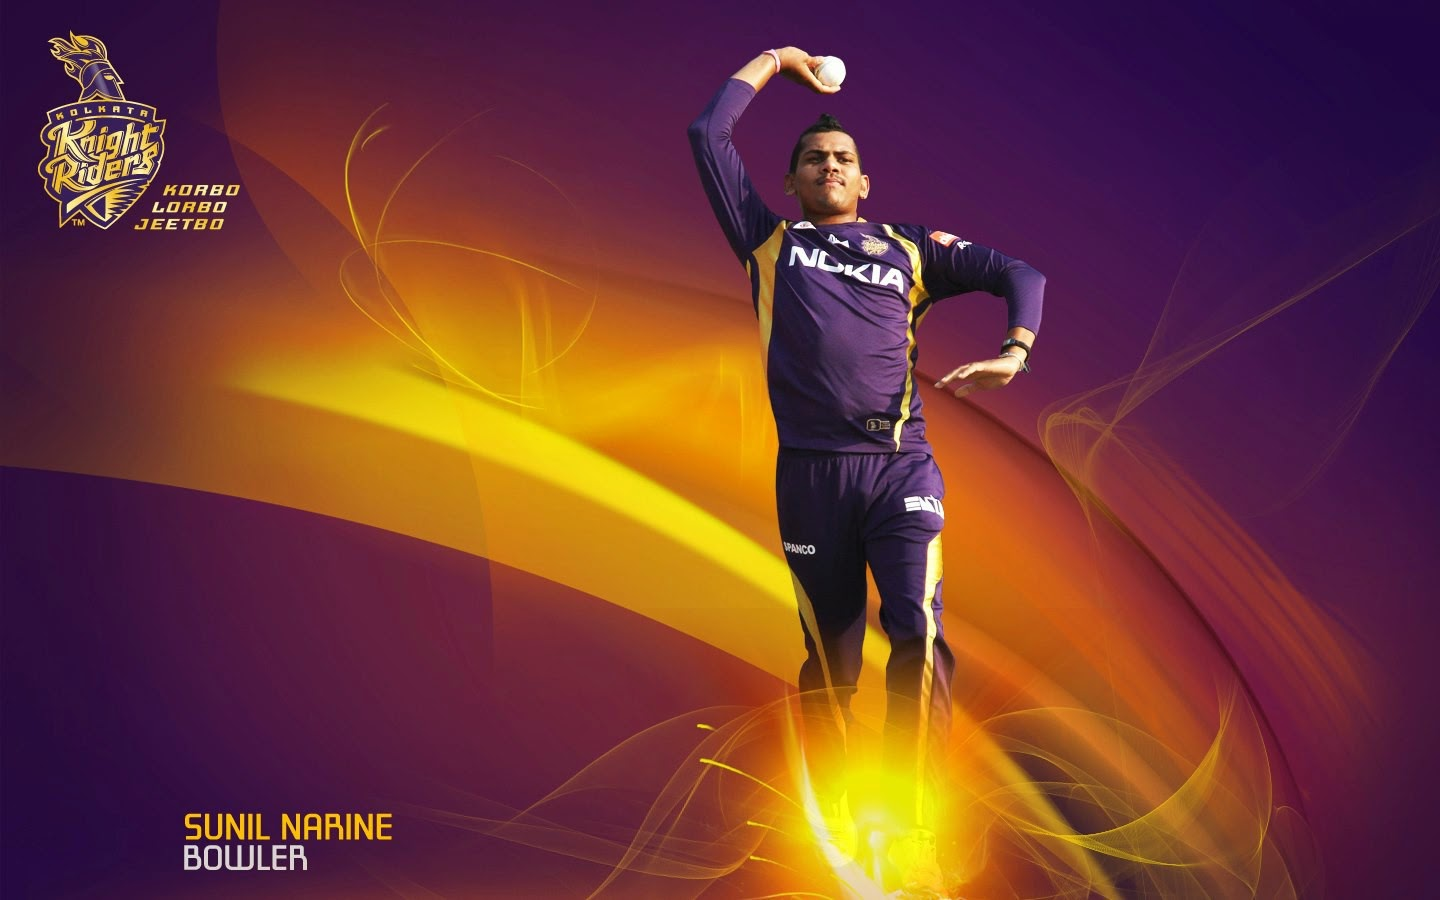 Hd Kolkata Knight Riders Kkr Full Hd Wallpapers Desktop